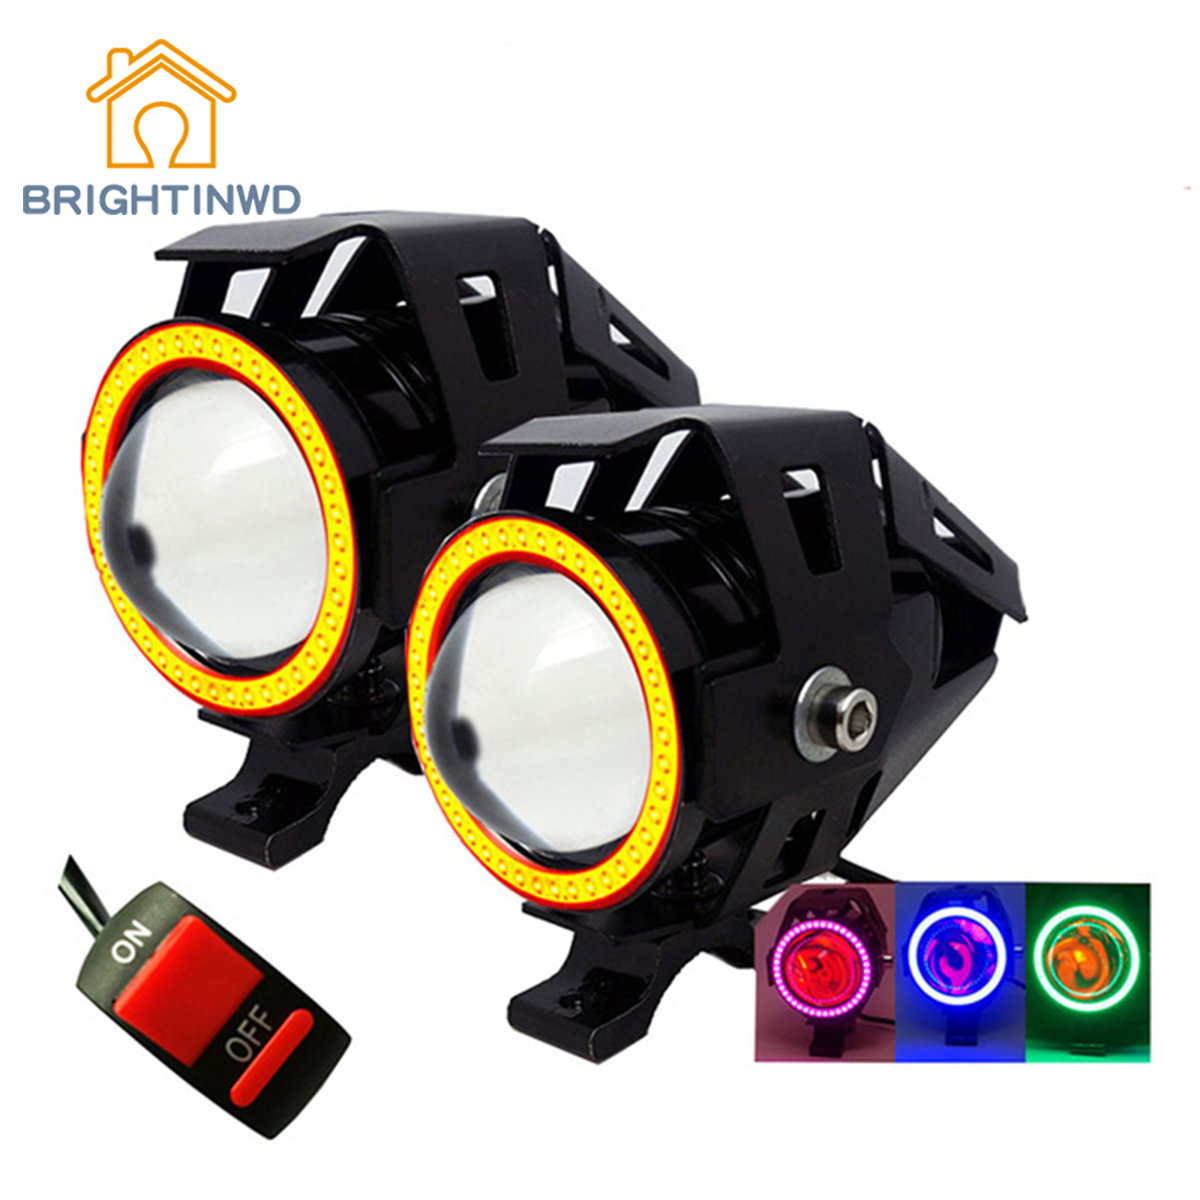 BRIGHTINWD 3000LMW Motorbike spotlight 2PCS 125W Motorcycle Headlight U5 U7 LED Moto Driving car Fog Spot Head Light Lamp